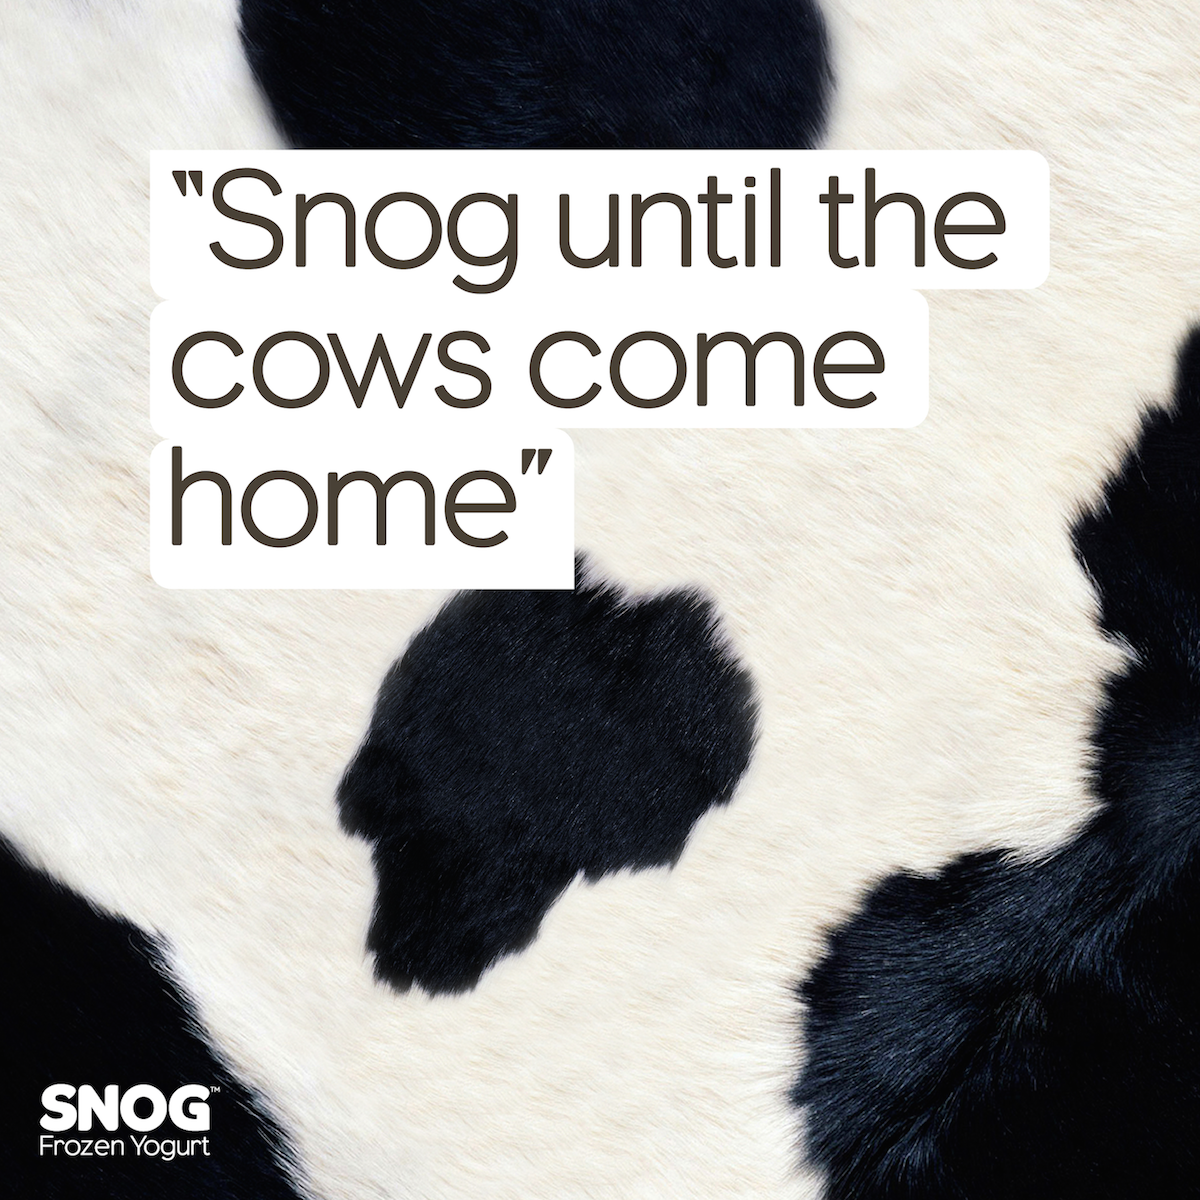 cows come home-01.png